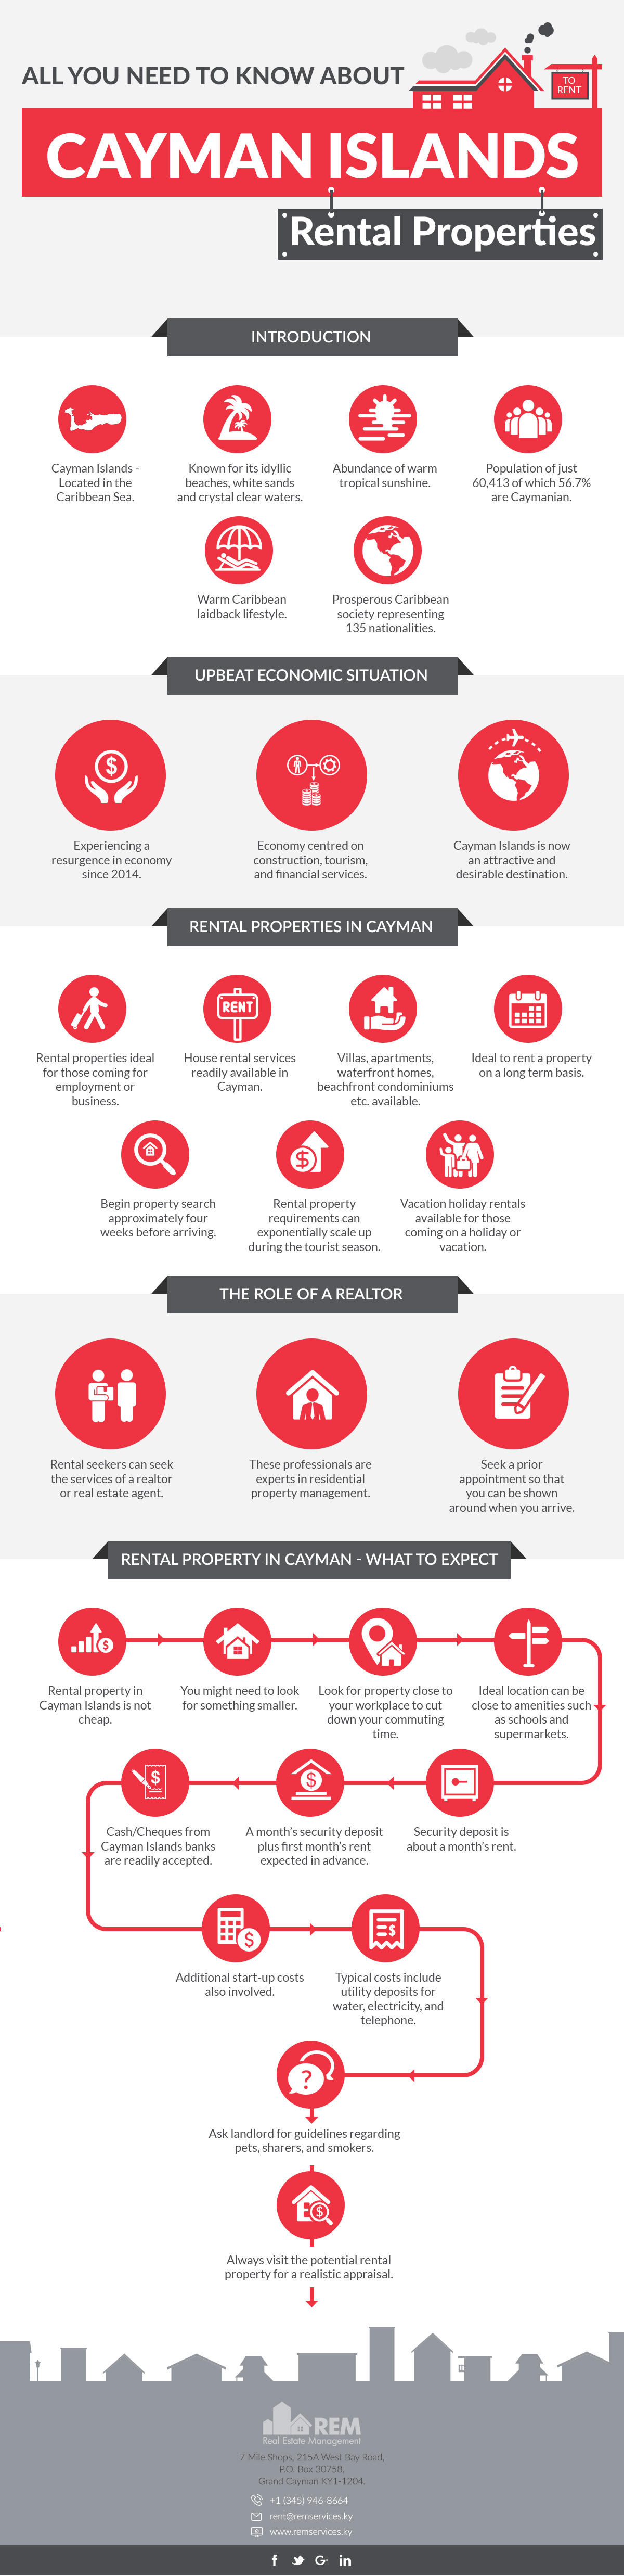 cayman-islands-rental-properties-facts-infographic-plaza